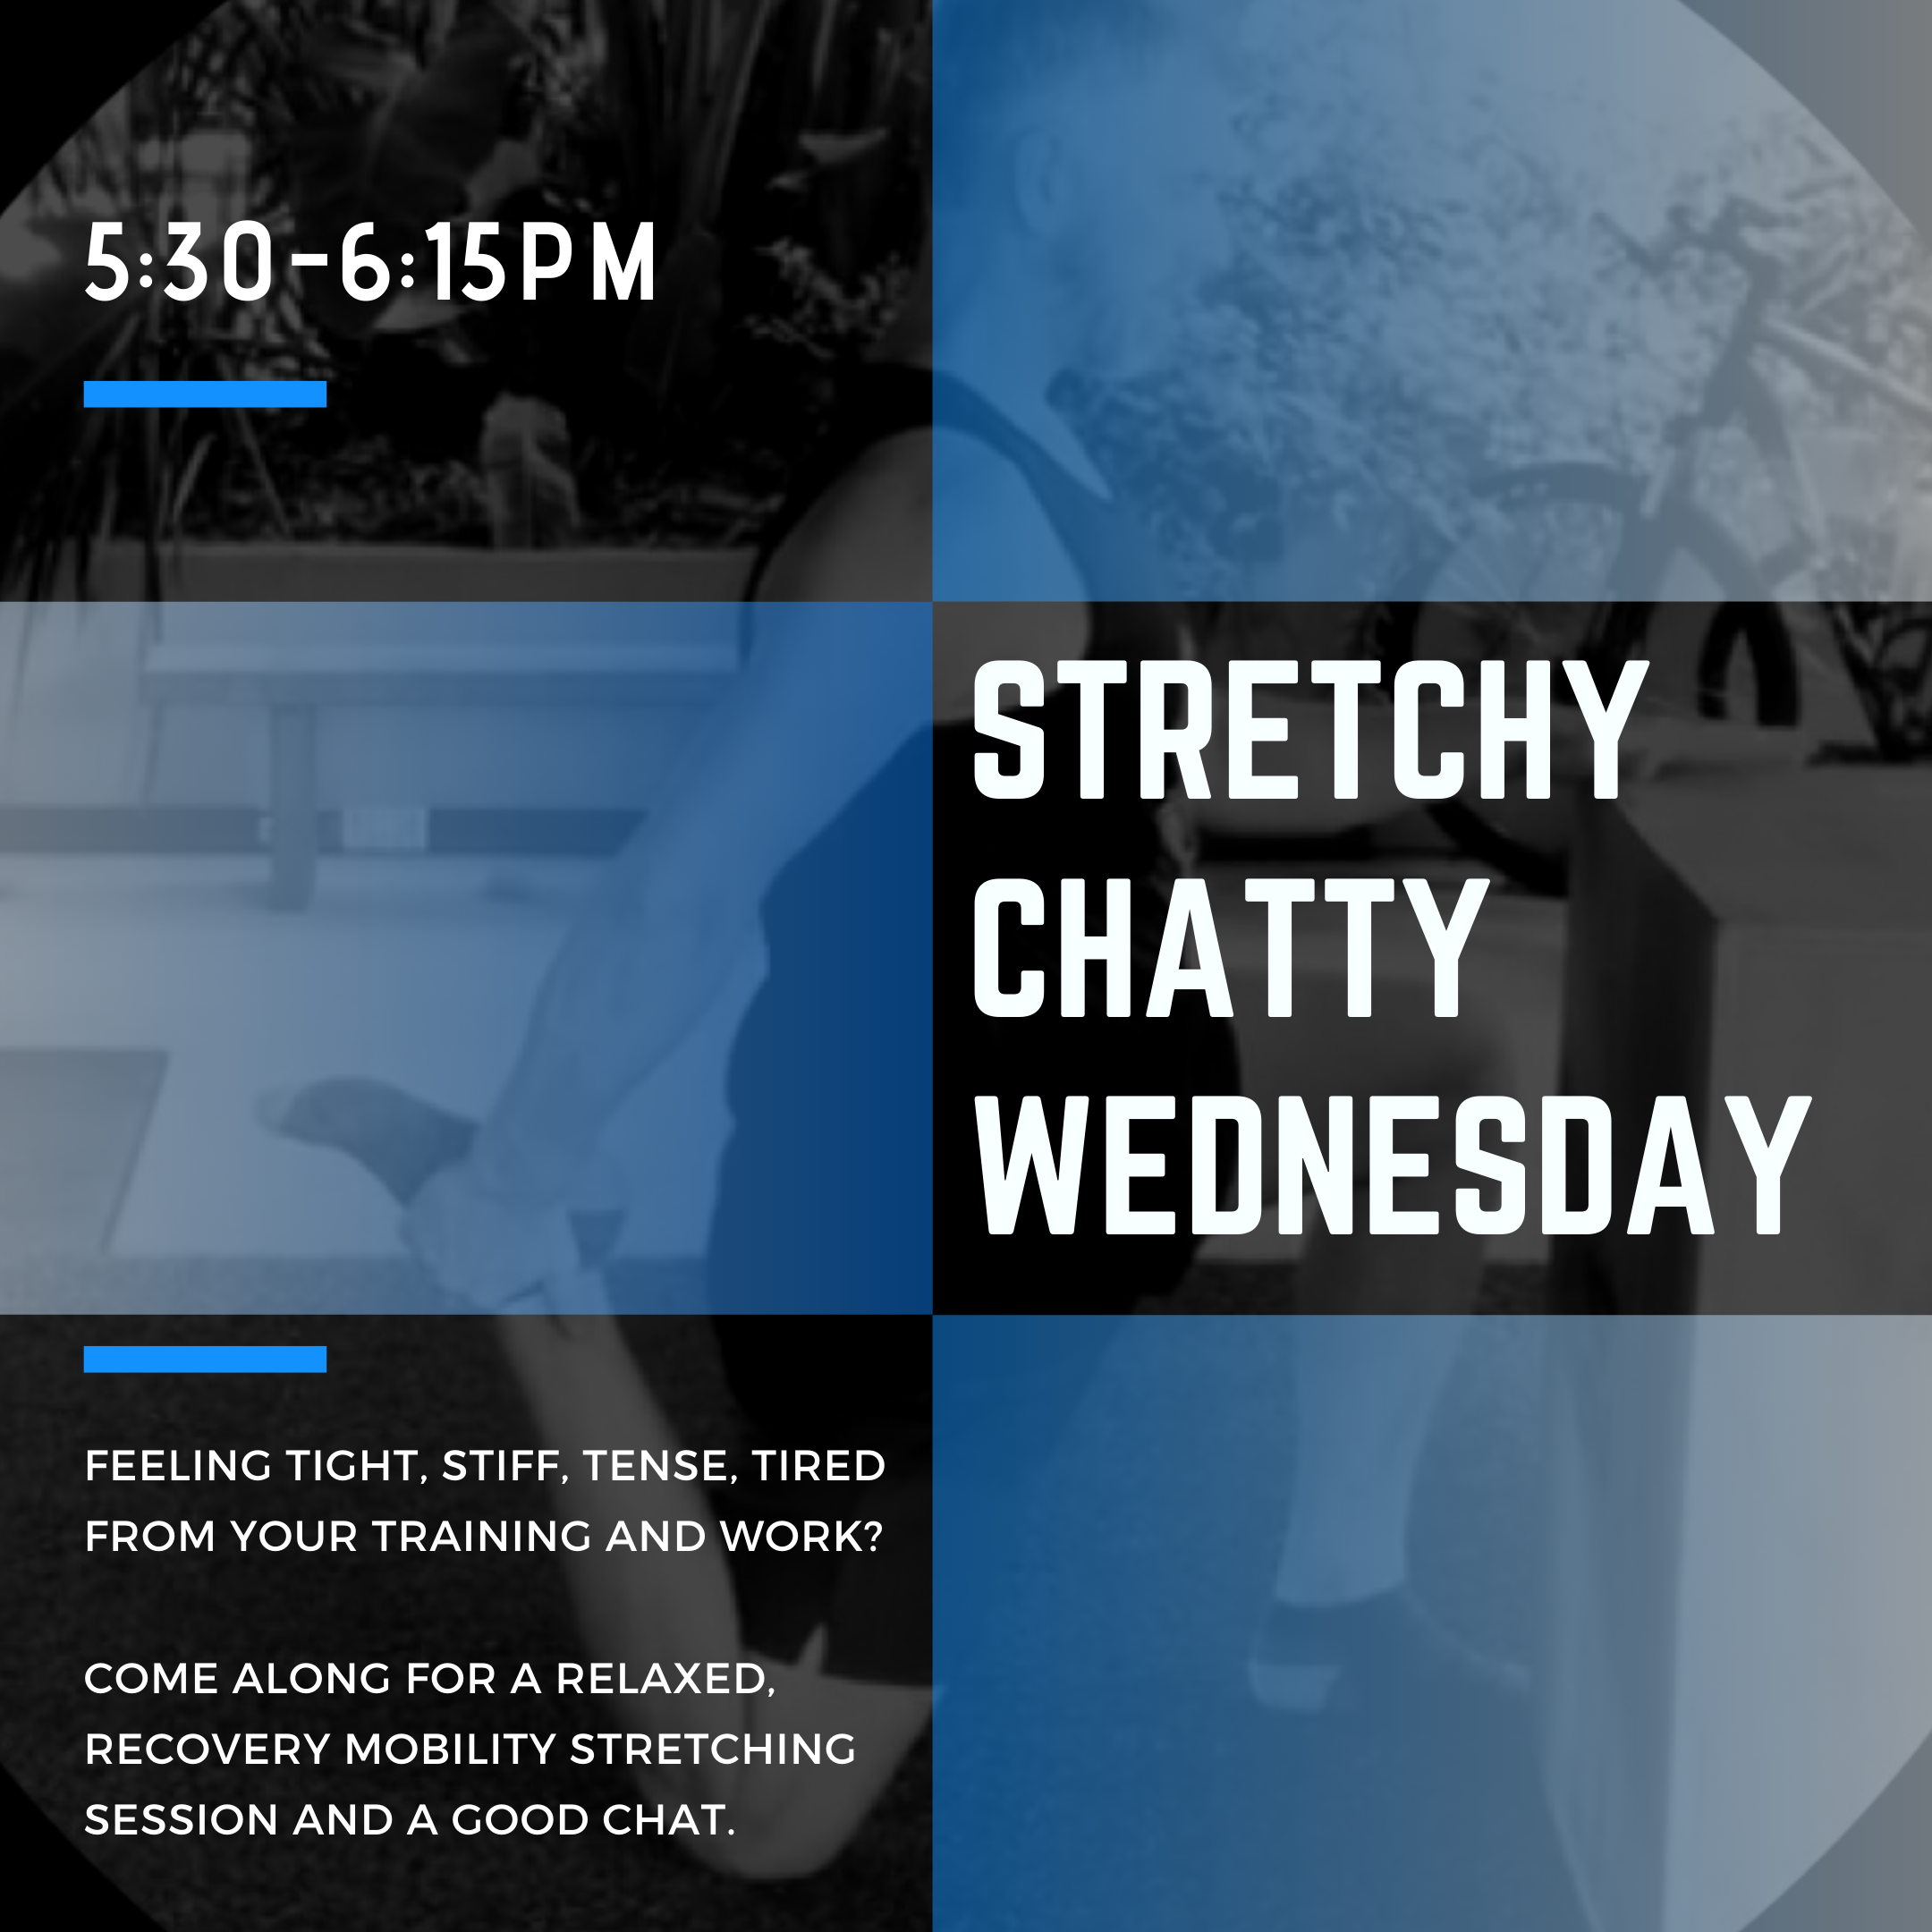 Feeling tight, stuff, tense, tired from your training and work_   Come along for a relaxed, recovery stretching, mobility session and a good chat. (1).png